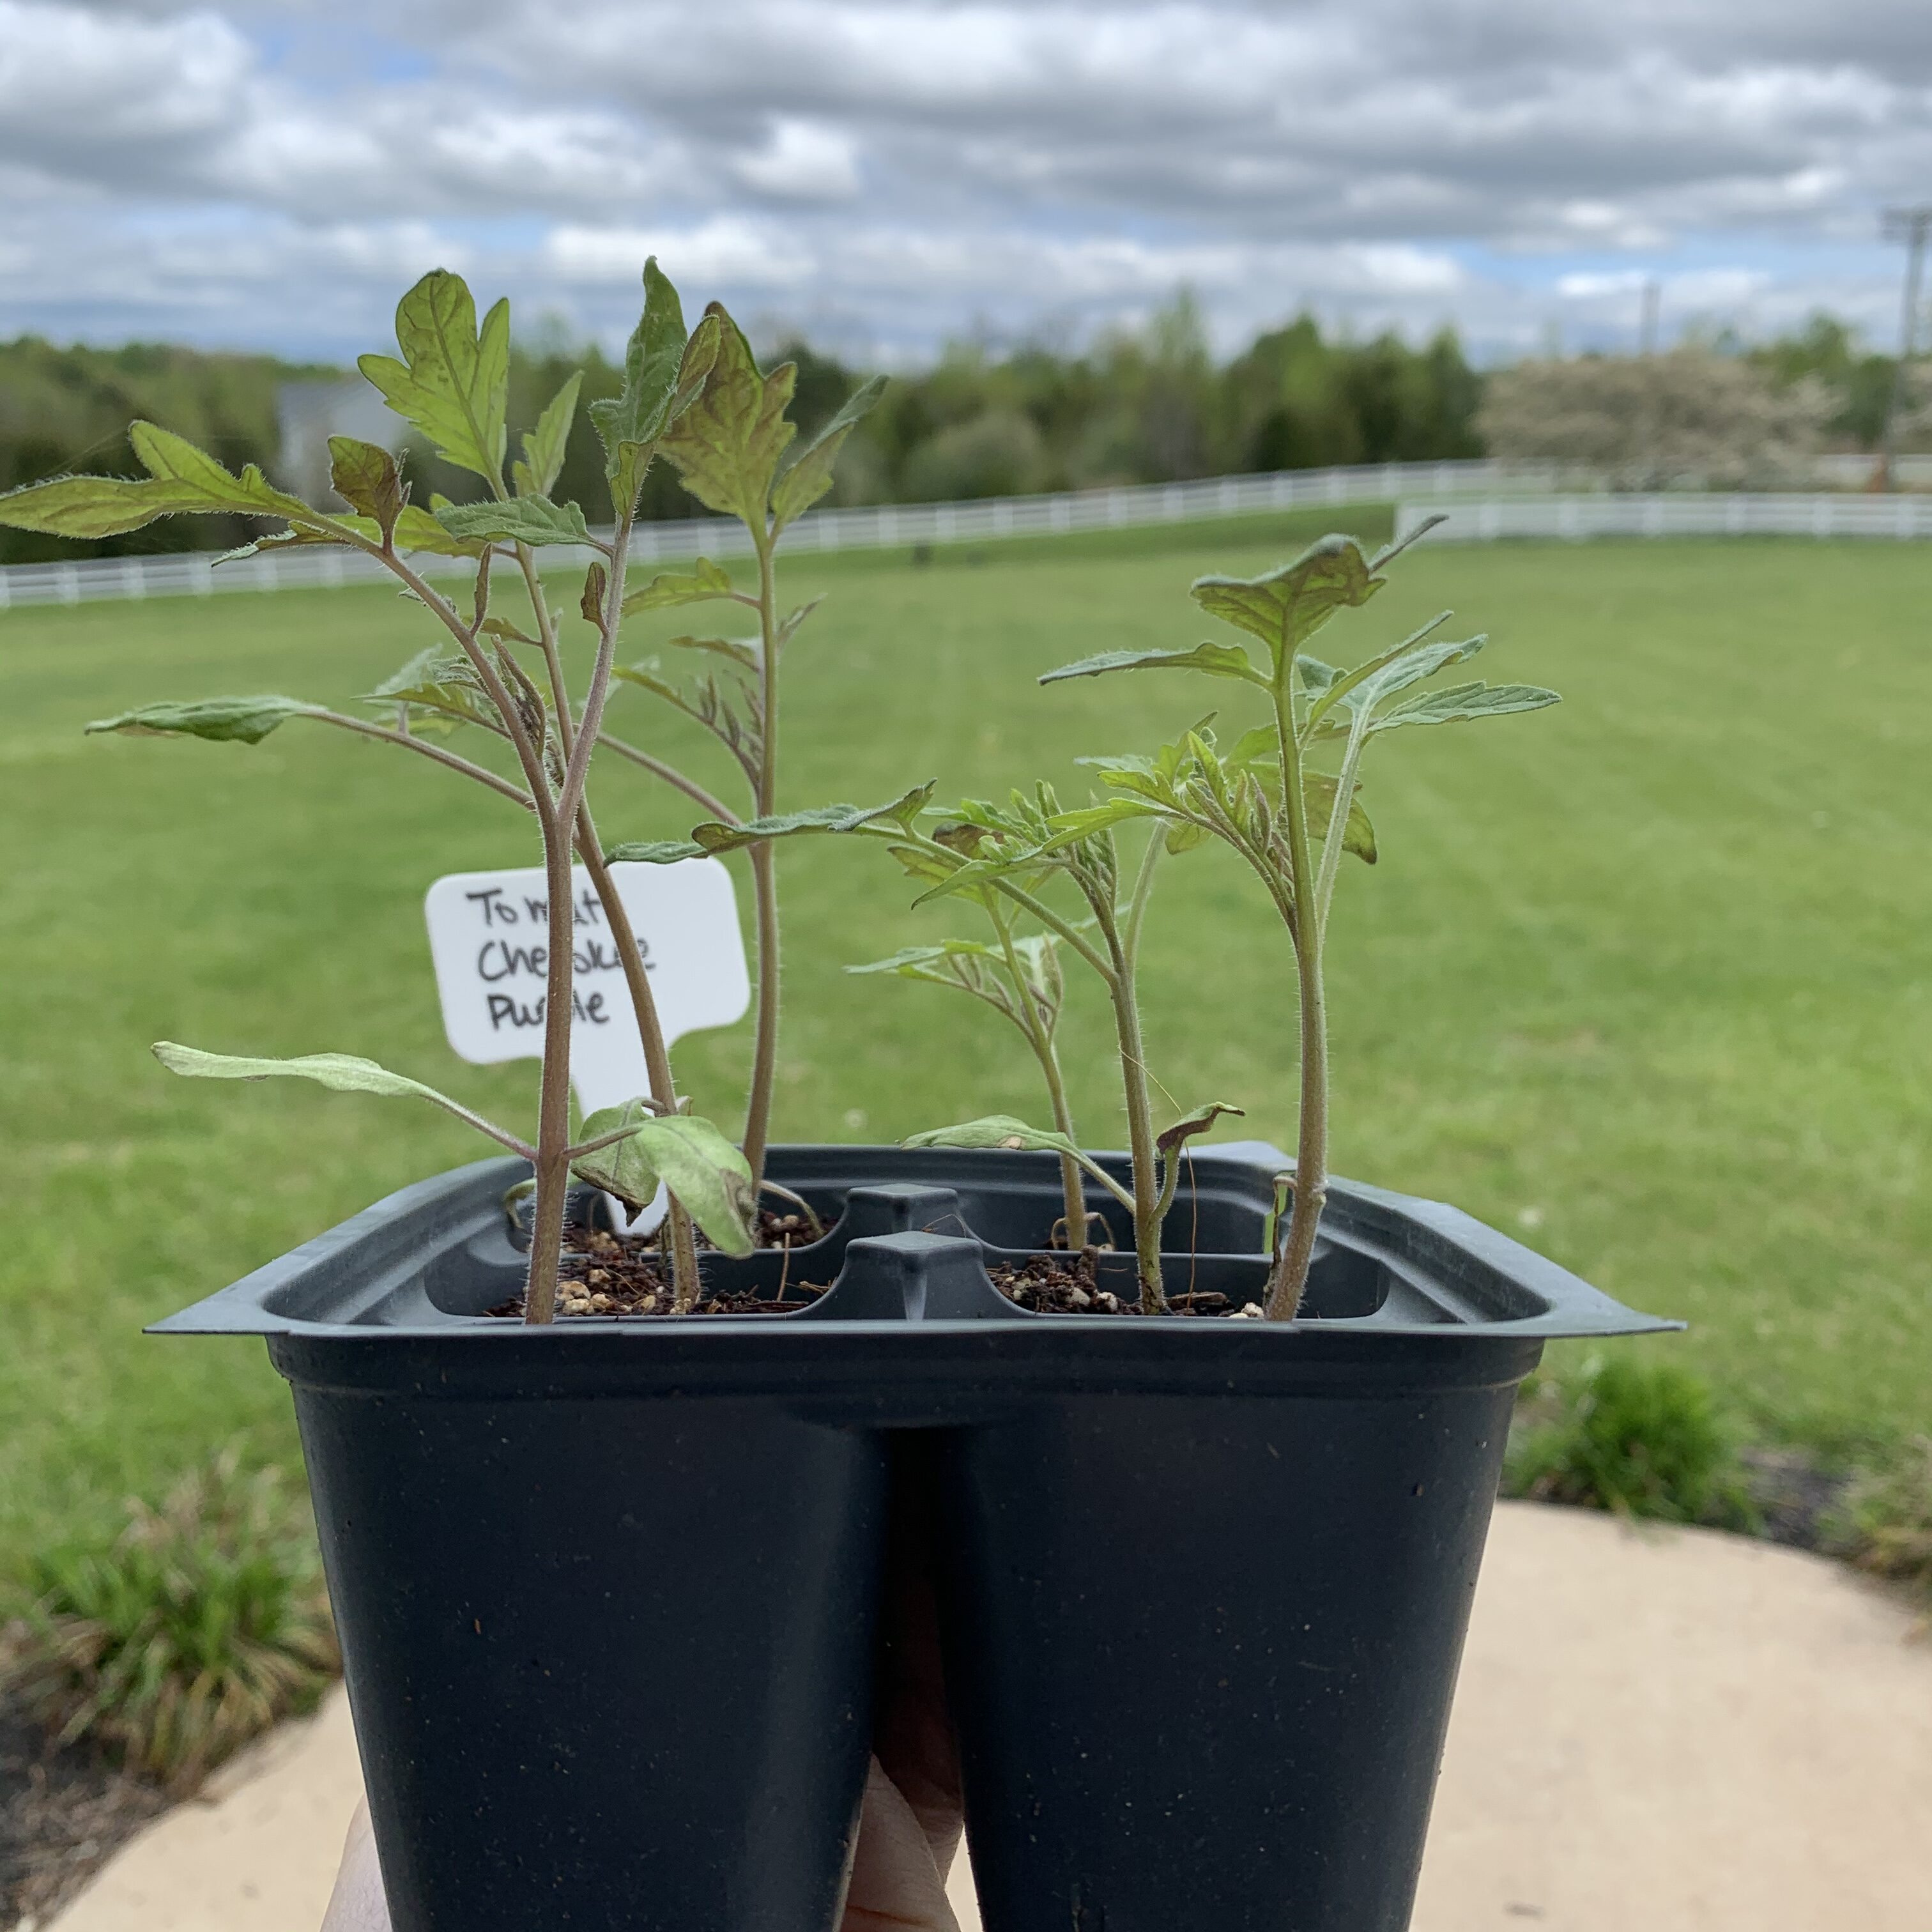 D8E2965A B8AA 4784 A3DF 5231F0F7031C Comparing Burpee Organic Seed Starting Mix vs Miracle Gro Moisture Control Potting Mix for transplanted tomato seedlings - Results